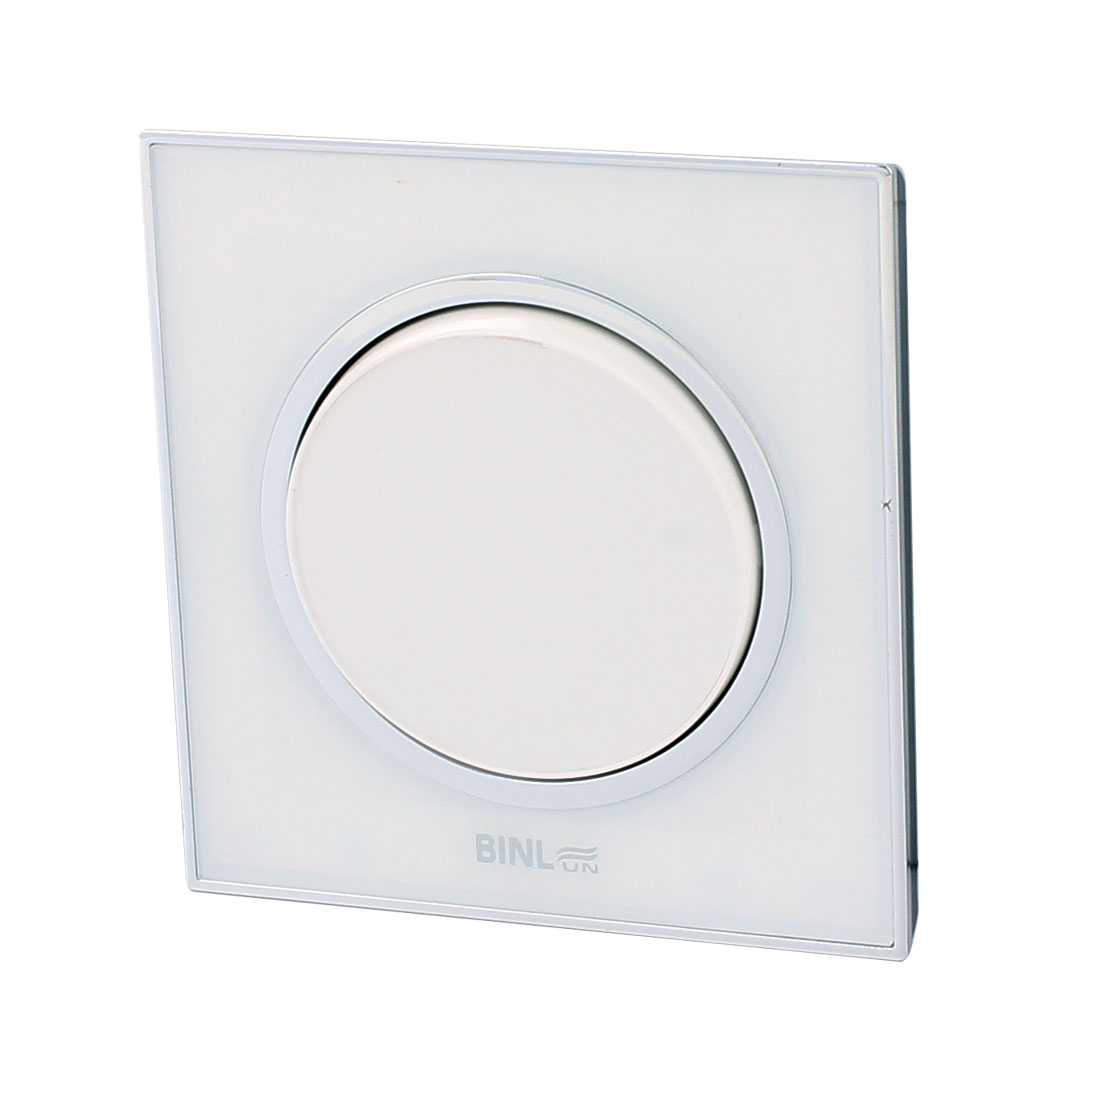 AC220V 10A 1 Gang 2 Way On/Off White Rounded Press Button Wall Mounted Switch